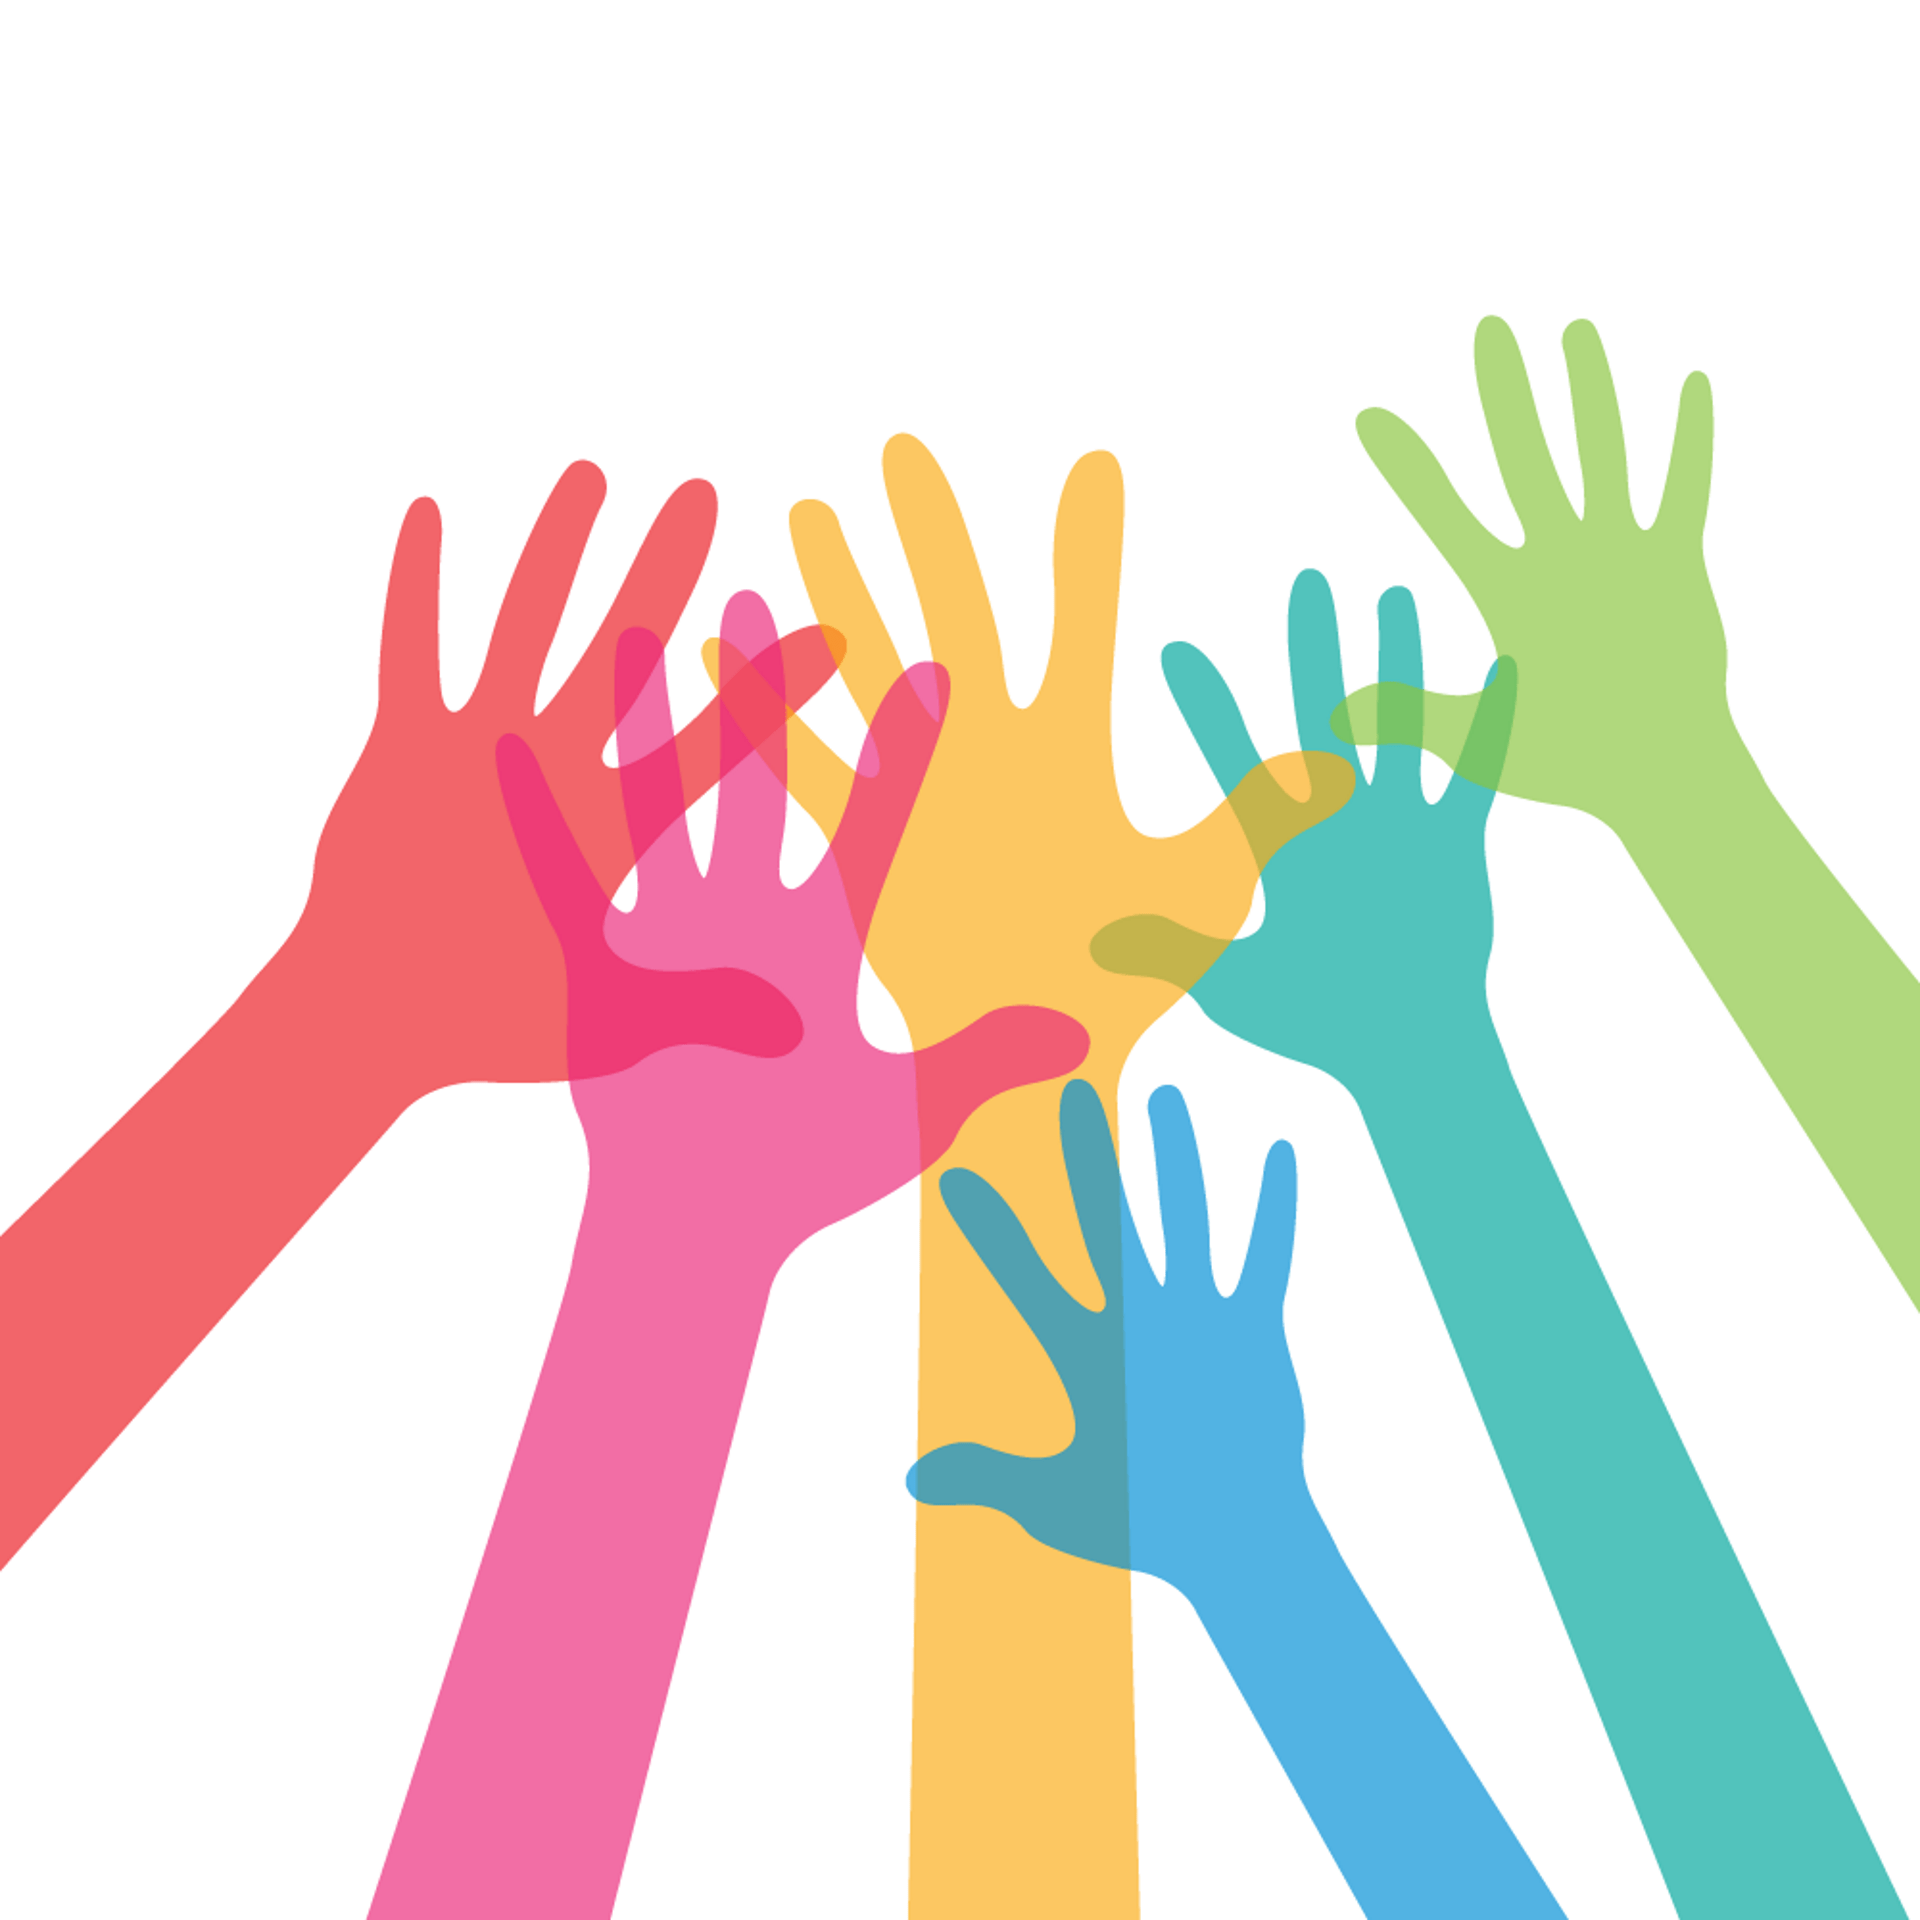 a drawing of raised colourful hands leaning together